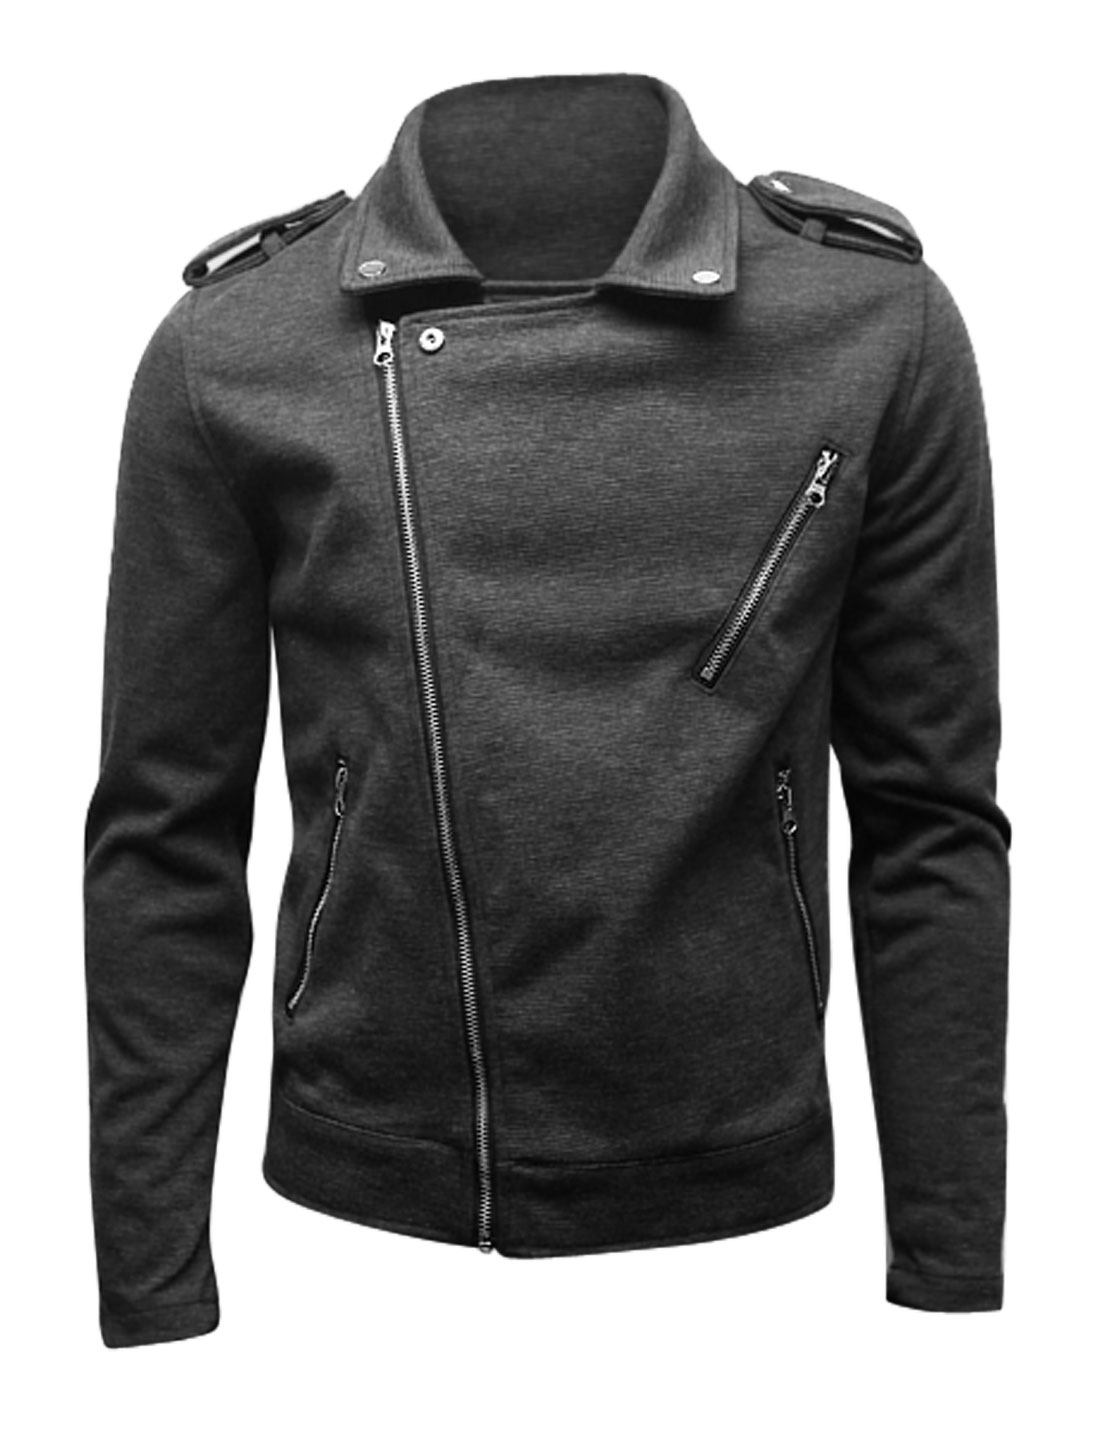 Men Convertible Collar Zip Closure Casual Design Jacket Dark Gray M